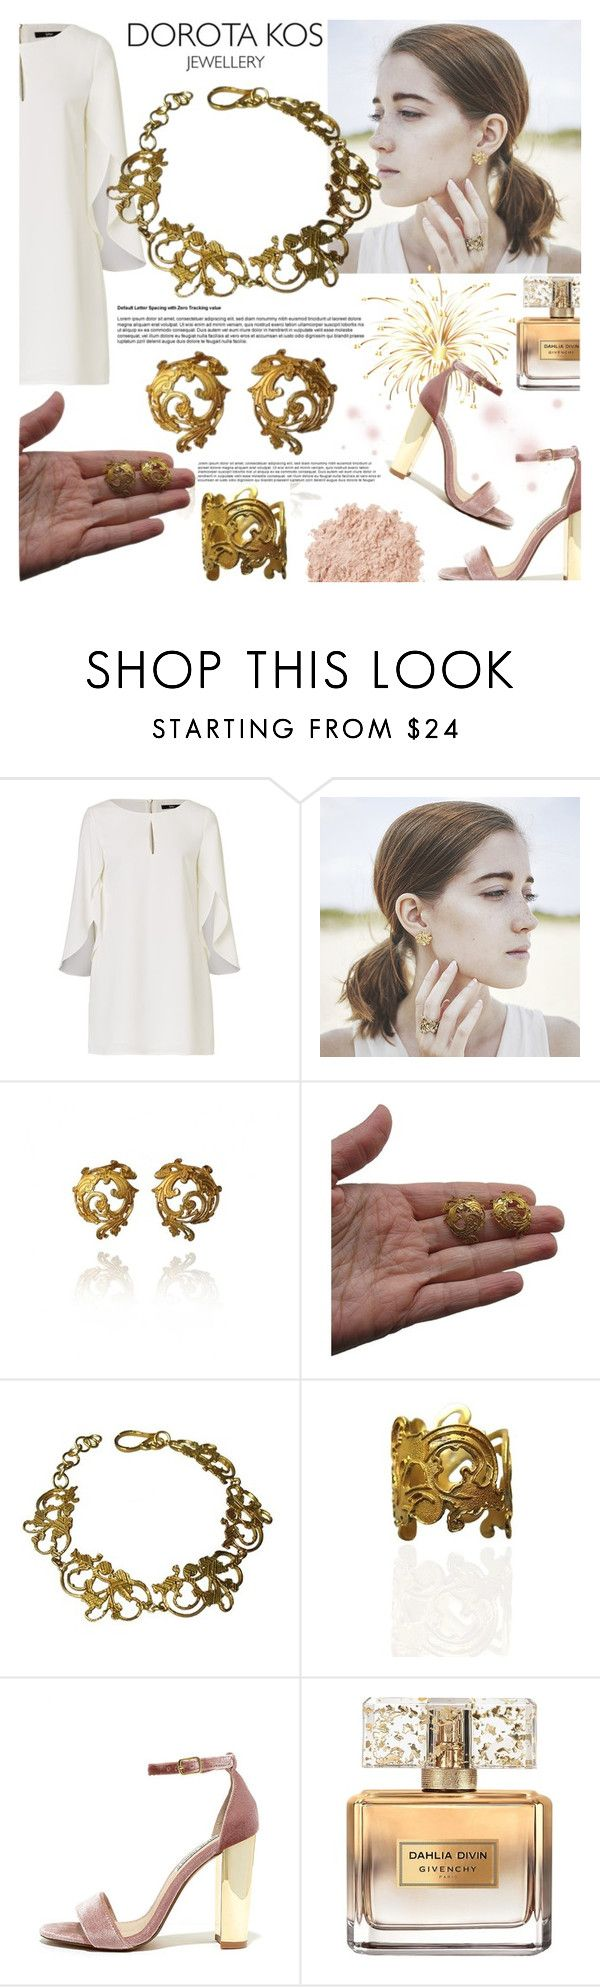 """DOROTA KOS JEWELLERY"" by gaby-mil ❤ liked on Polyvore featuring Steve Madden, Givenchy, La Mer, jewellery and dorotakos"